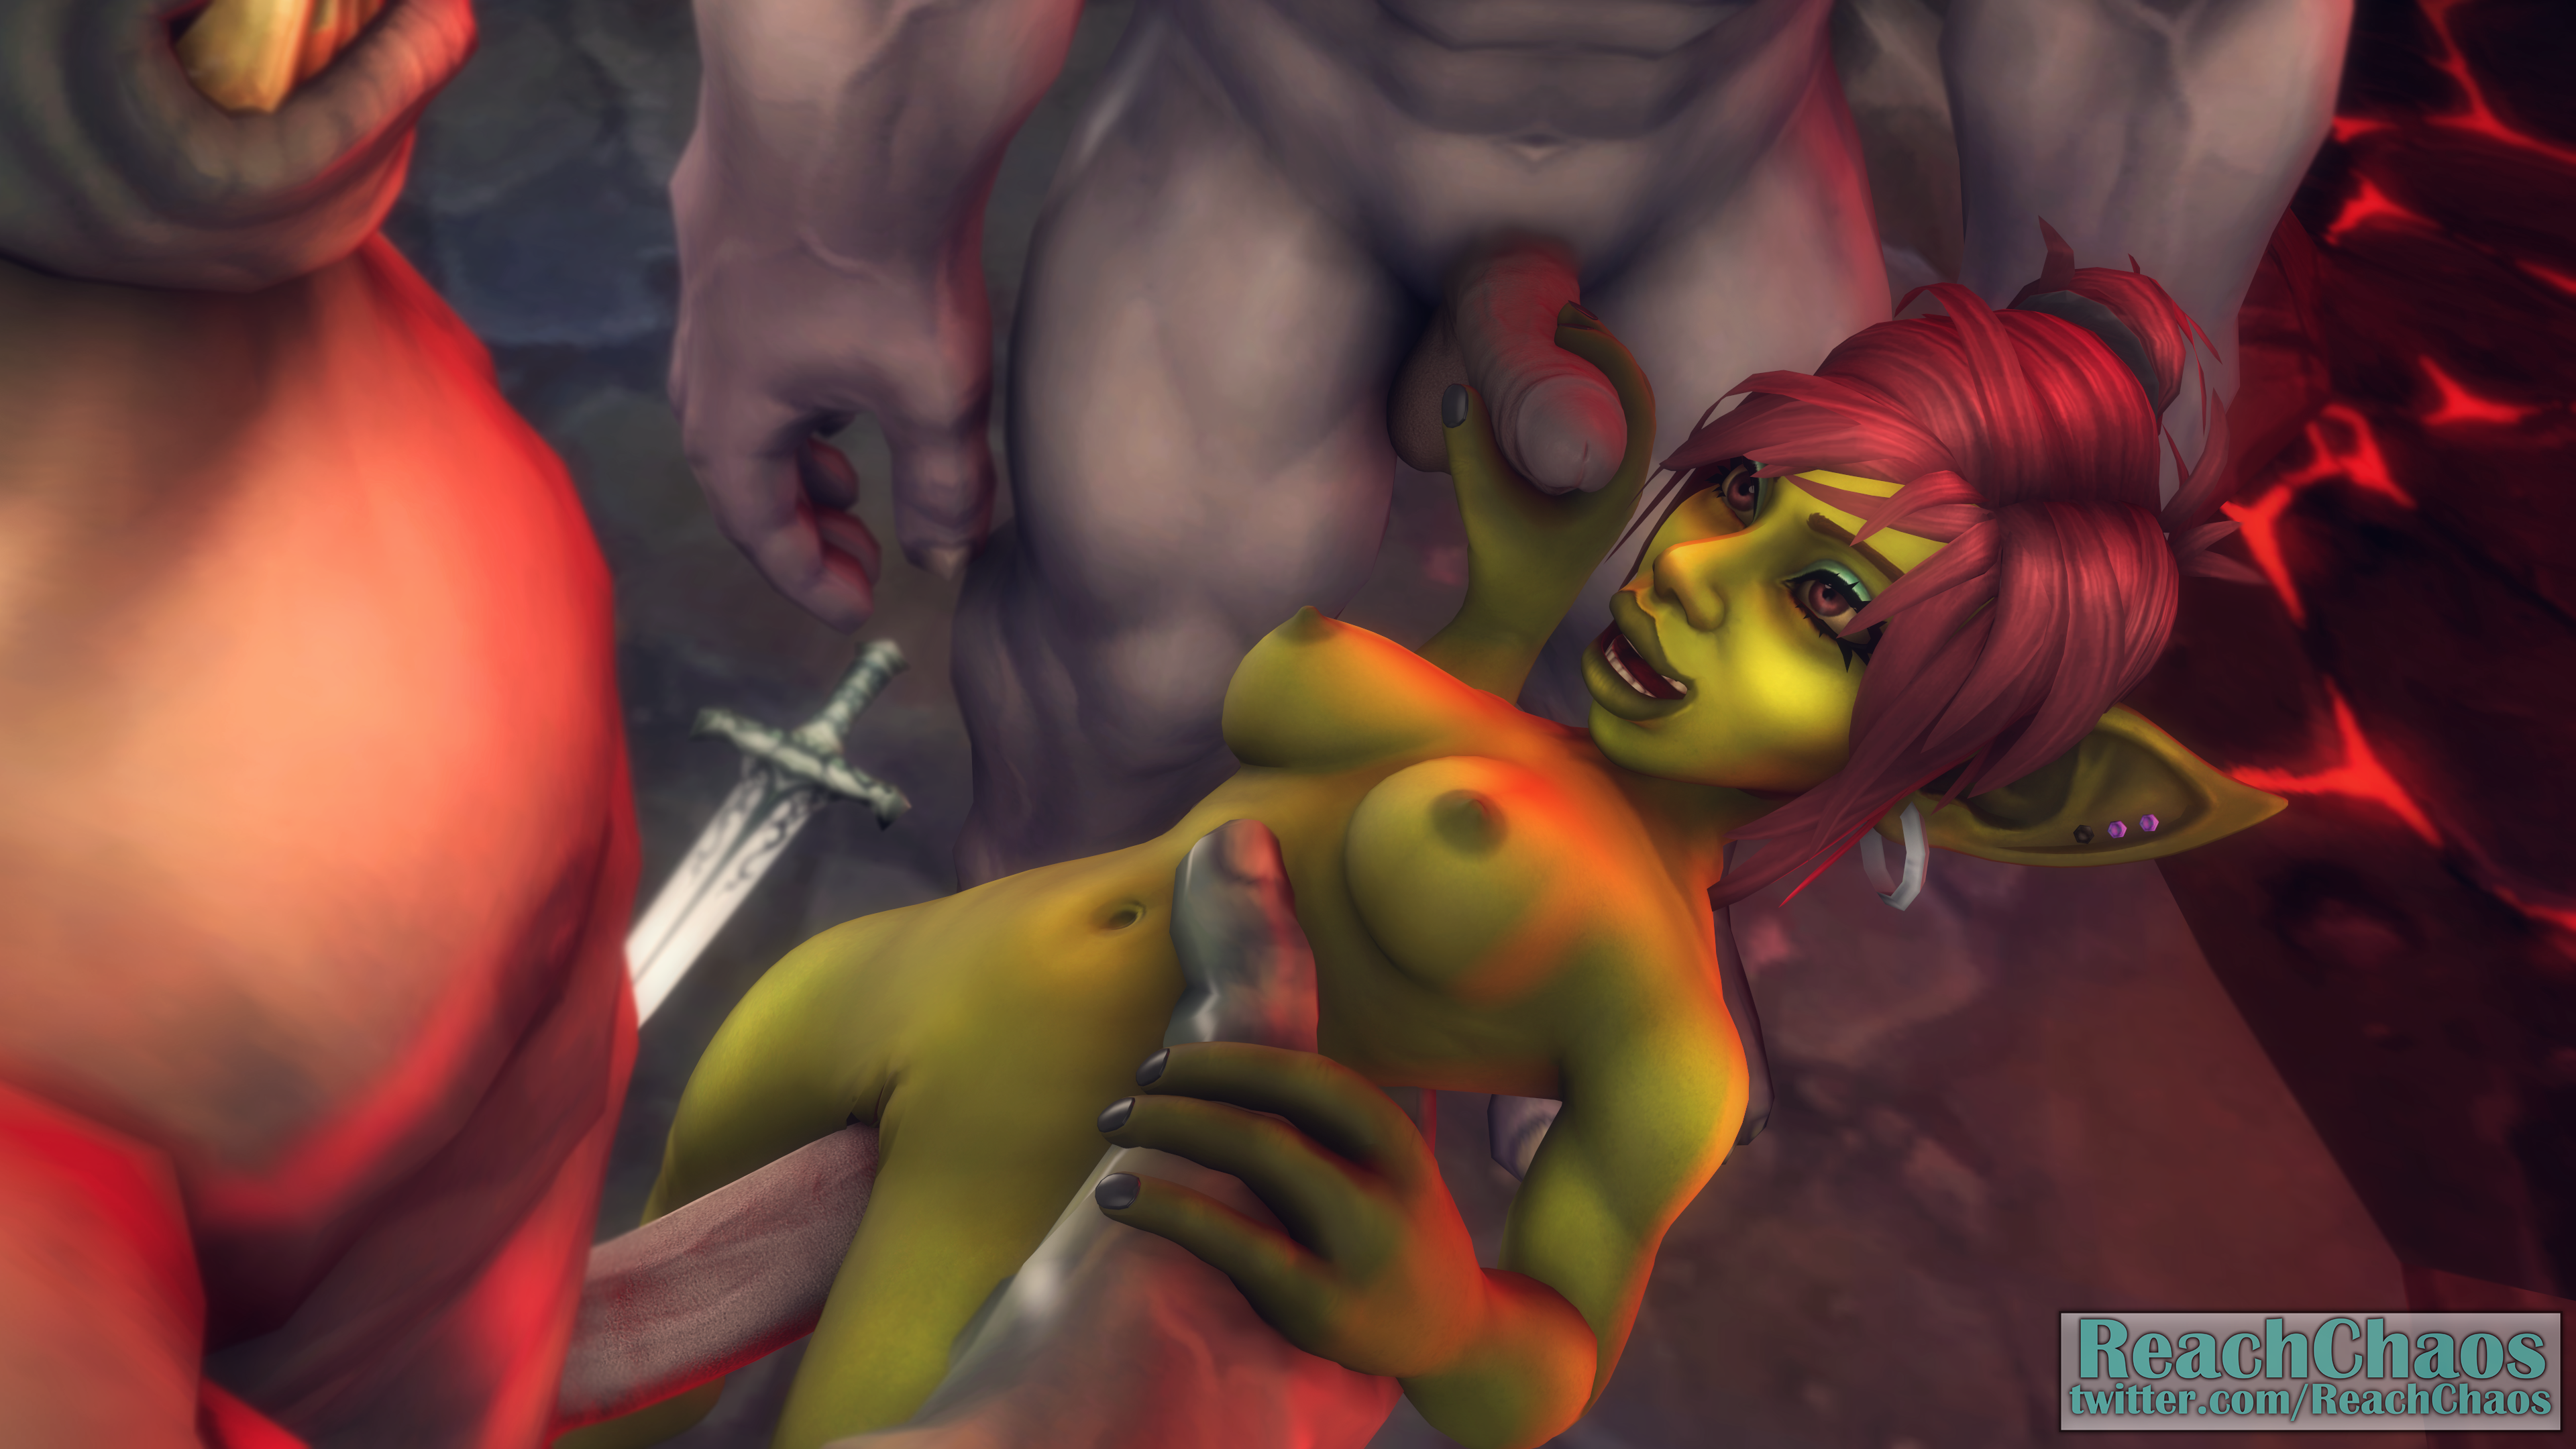 Rule 34 2boys 3d Domination Female Goblin Goblin Female Handjob Orc Reachchaos Small Breasts Smaller Female Source Filmmaker Threesome World Of Warcraft Wow 3198846 (in this case, something can be defined as any person, place, organism, inanimate object, philosophical concept. rule 34 2boys 3d domination female goblin goblin female handjob orc reachchaos small breasts smaller female source filmmaker threesome world of warcraft wow 3198846